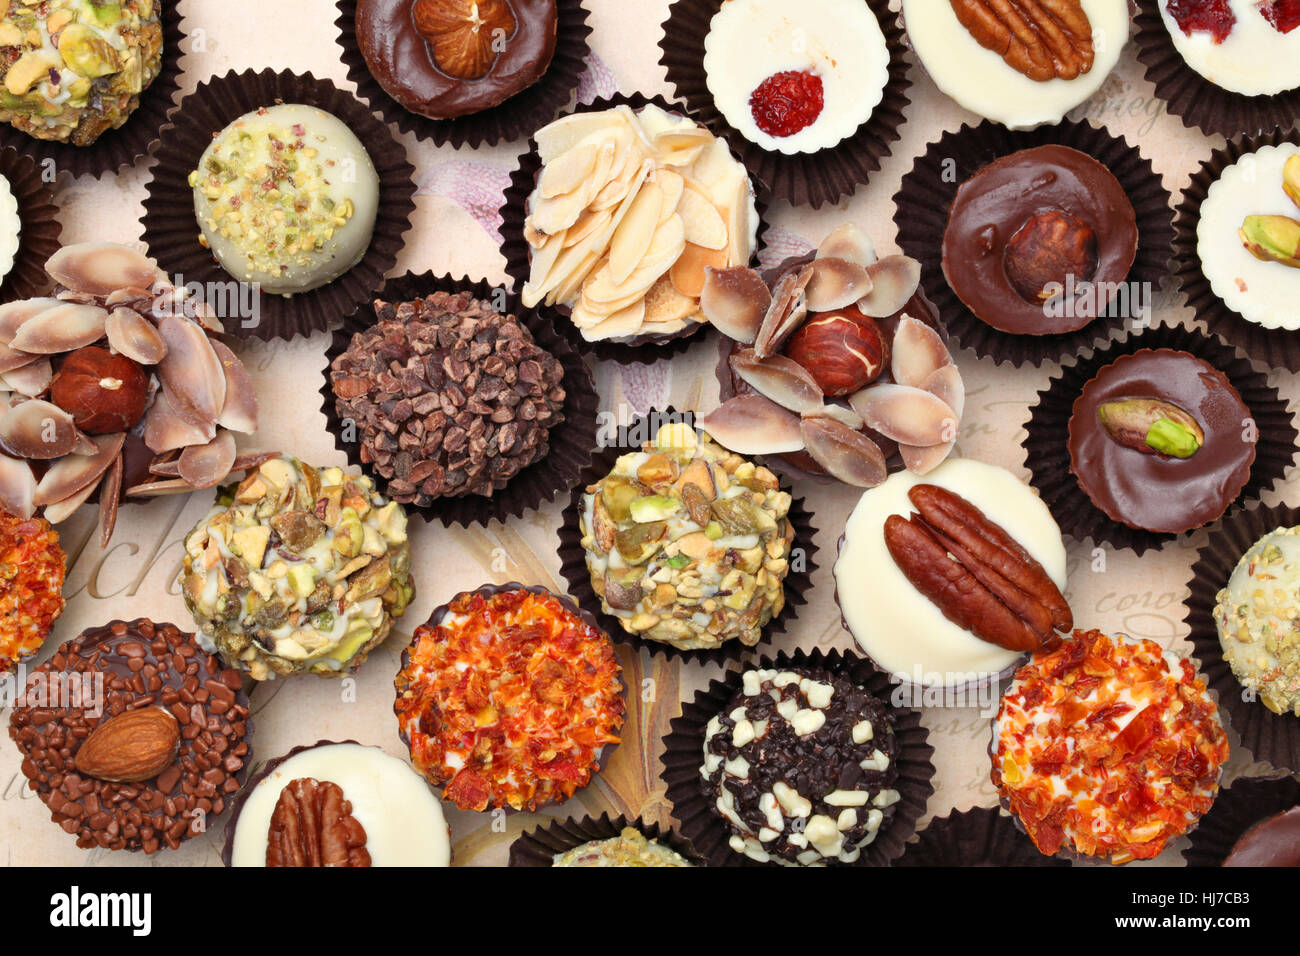 Background image of delicious handmade chocolate texture - Stock Image